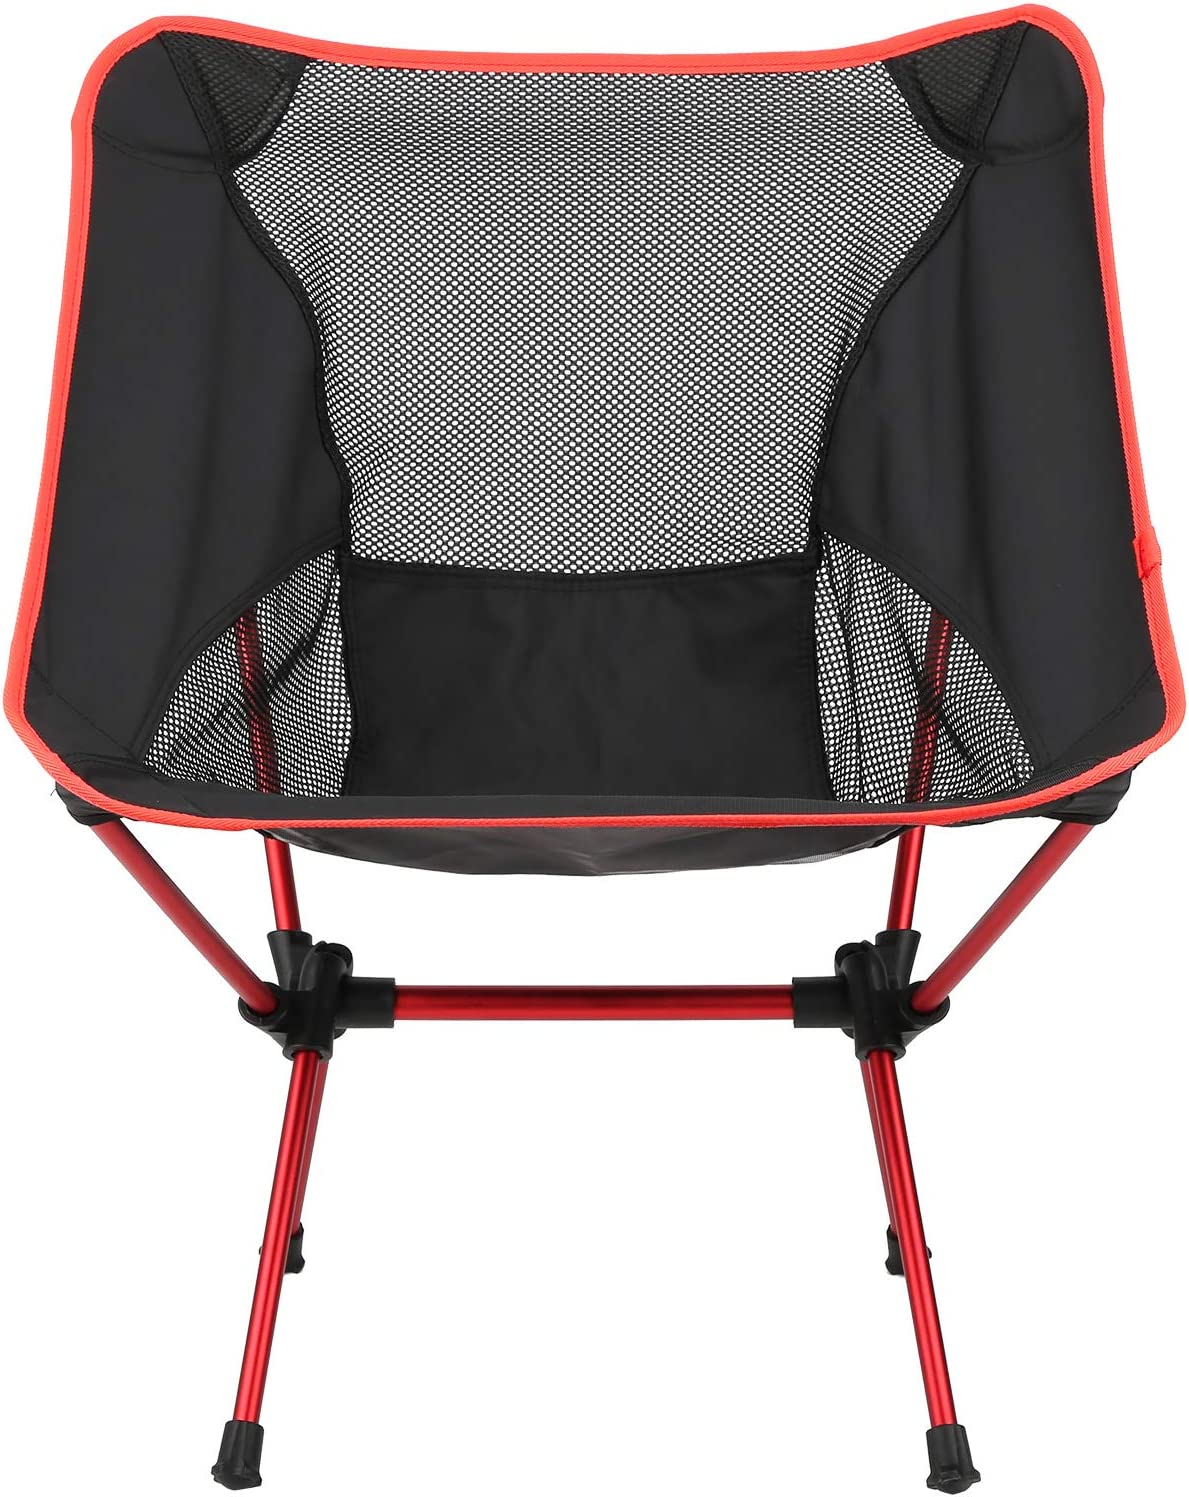 Jazar Folding Fishing Chair More Firmer Secure Des Foldable Max Superlatite 59% OFF and